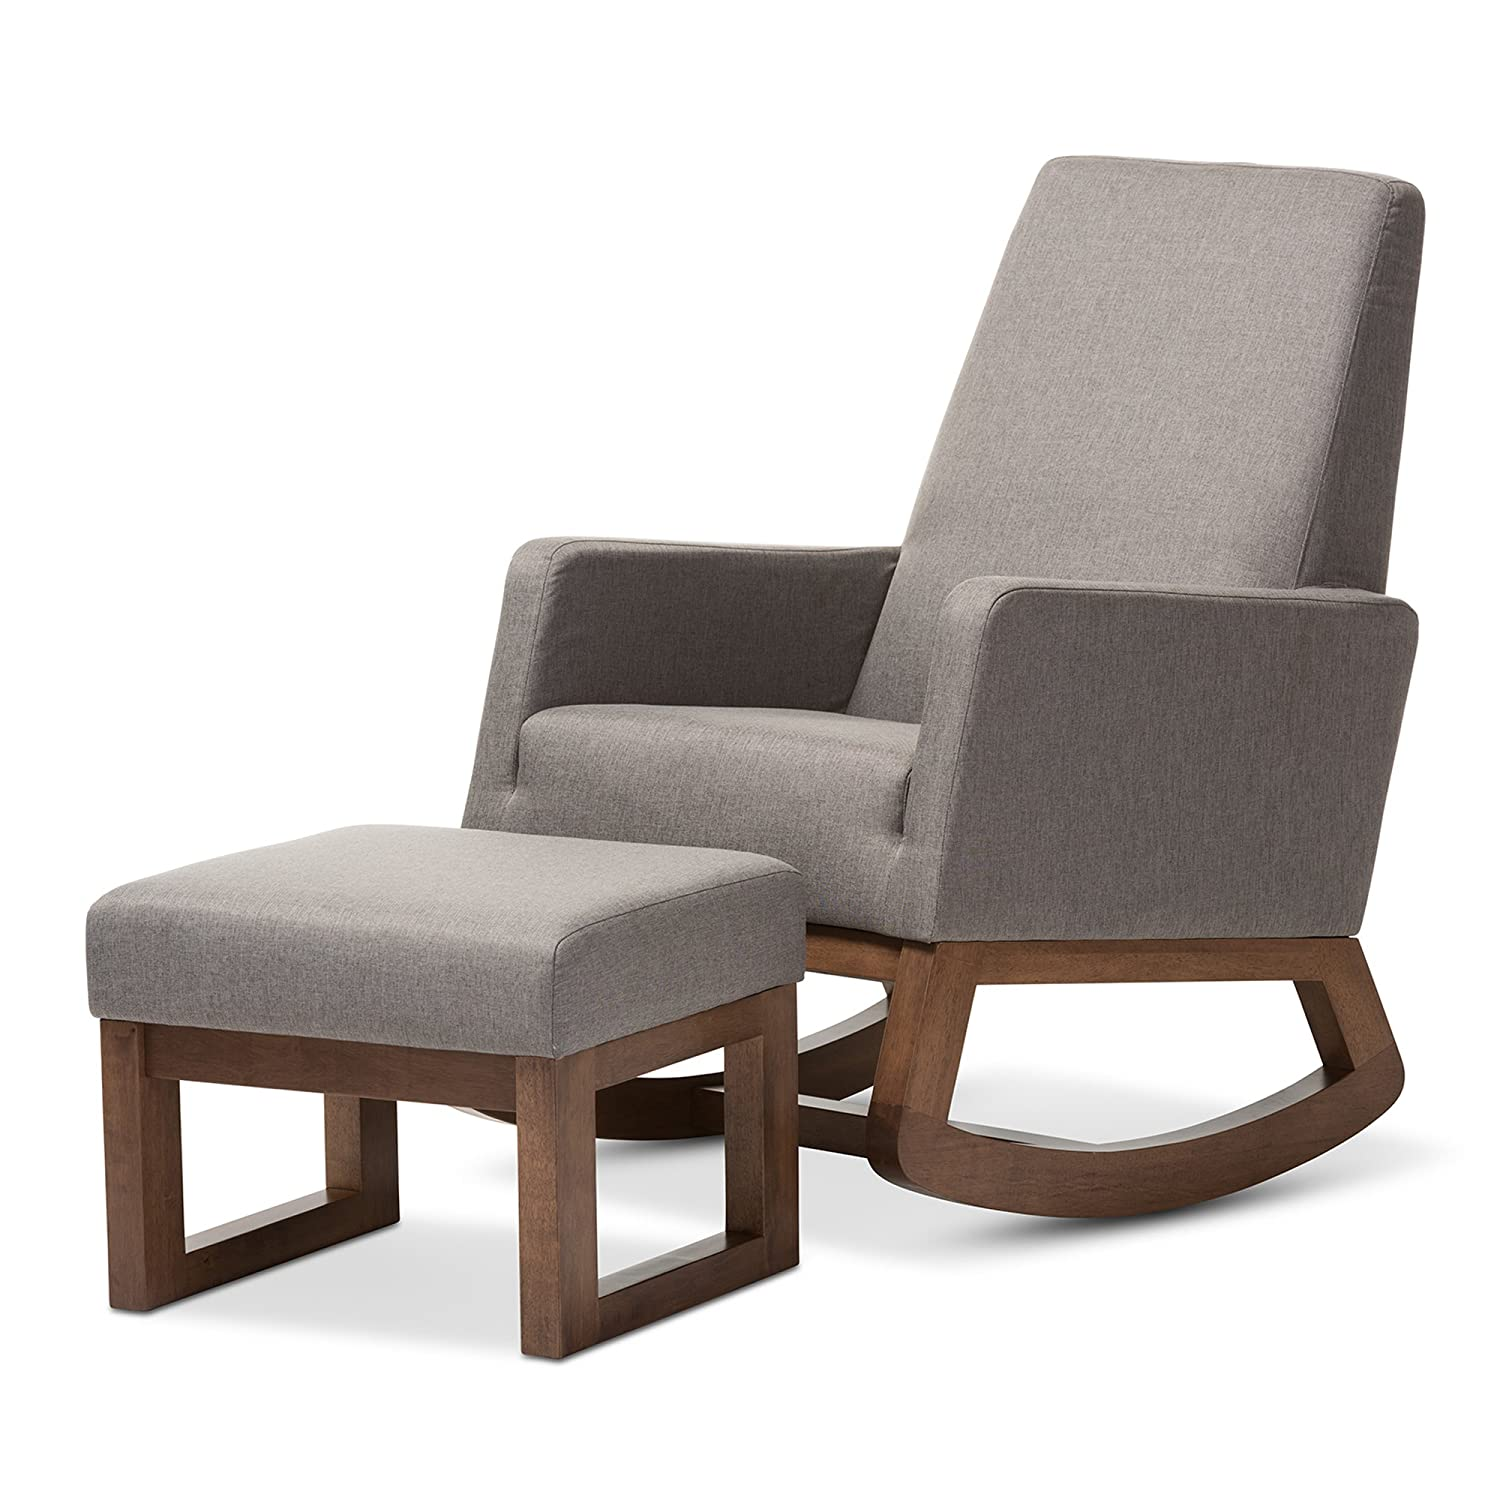 Superbe Amazon.com: Baxton Studio Yashiya Mid Century Retro Modern Fabric  Upholstered Rocking Chair And Ottoman Set, Grey: Kitchen U0026 Dining